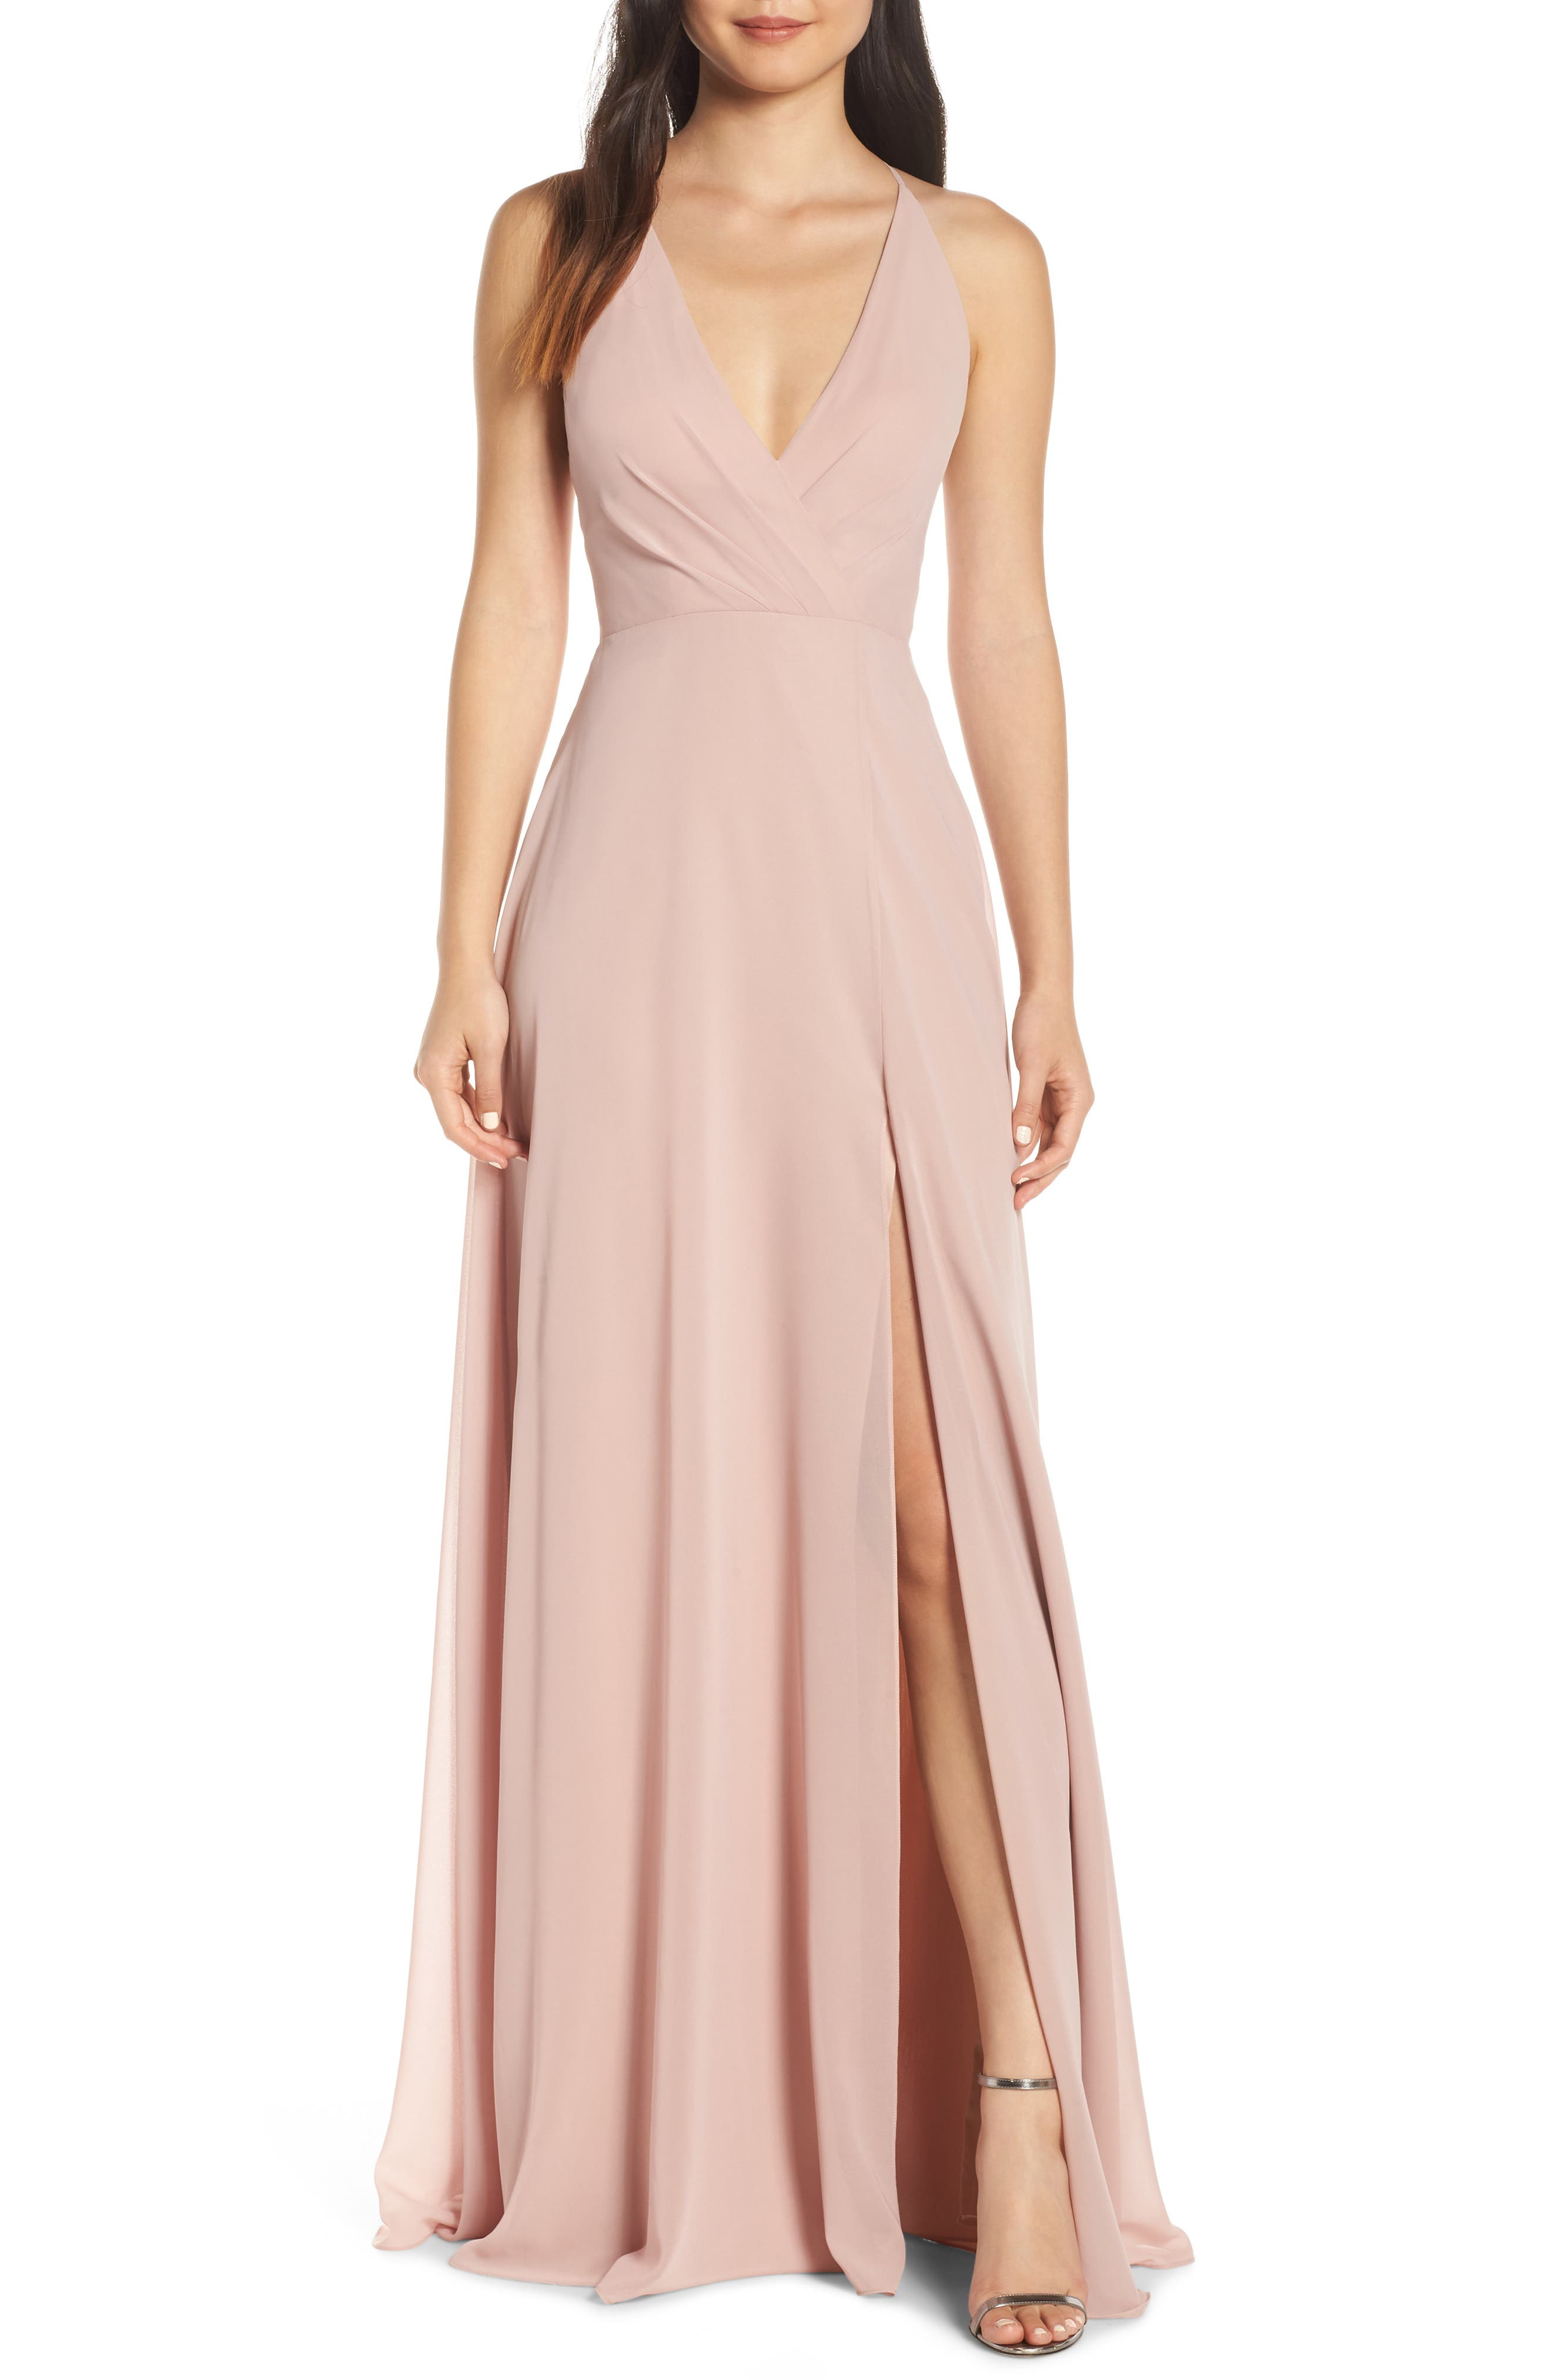 Jenny Yoo Bryce Surplice V-Neck Chiffon Evening Dress, 8 (similar to 1) - Pink